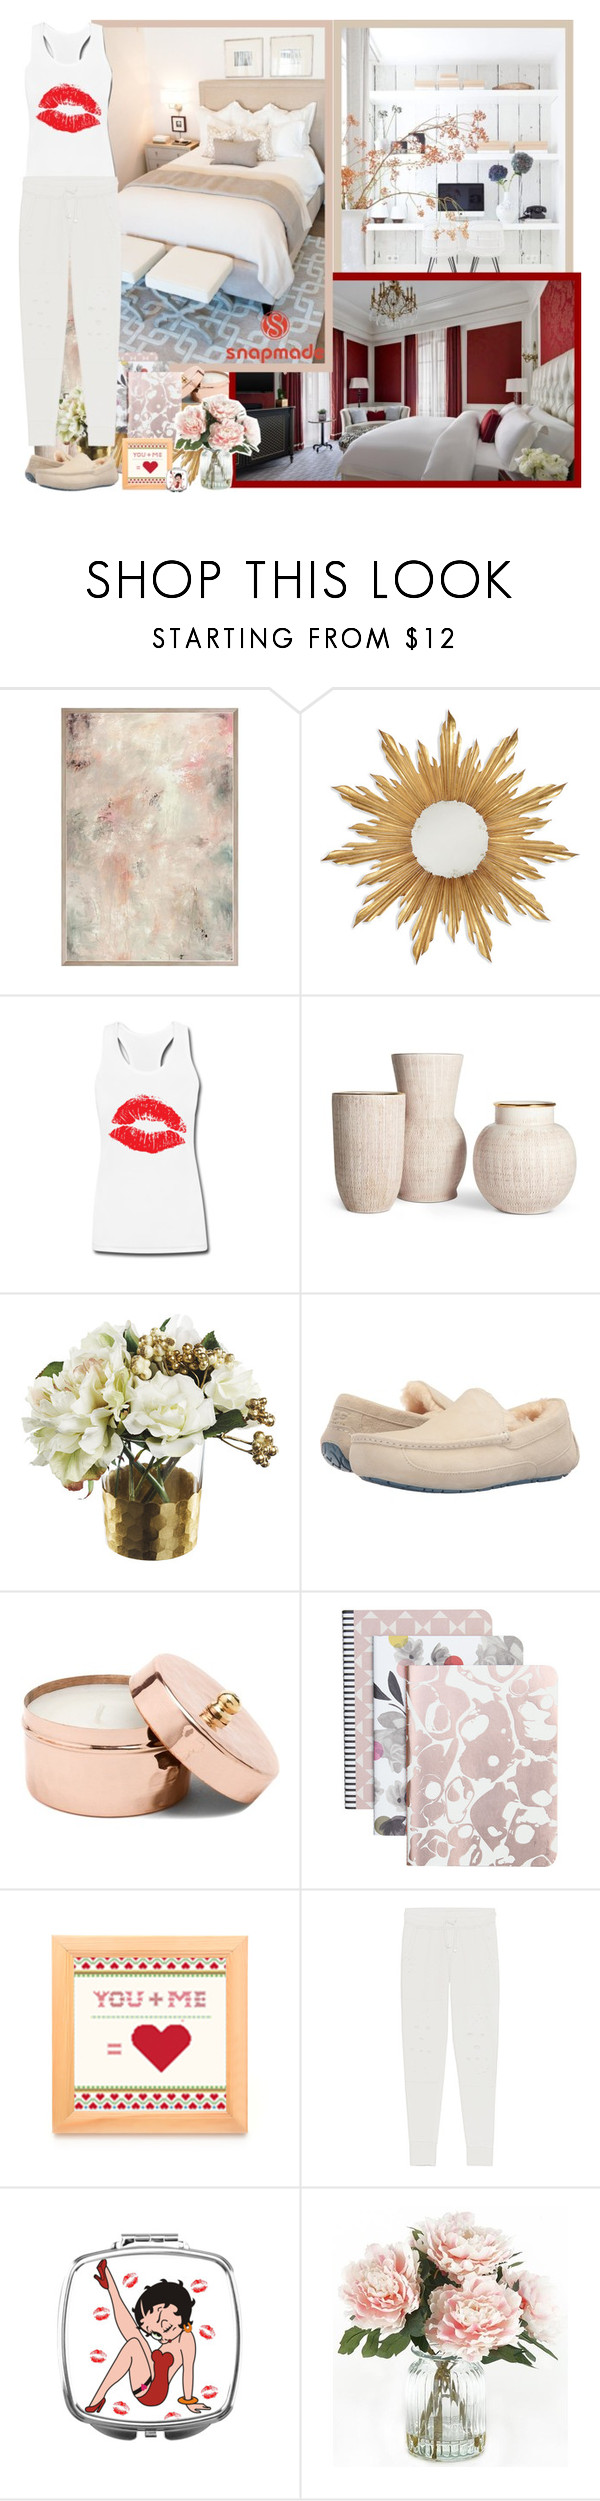 """Snapmade.com"" by asia-12 ❤ liked on Polyvore featuring Jonathan Charles Fine Furniture, UGG, Caroline Gardner, True Religion, Home Decorators Collection and snapmade"